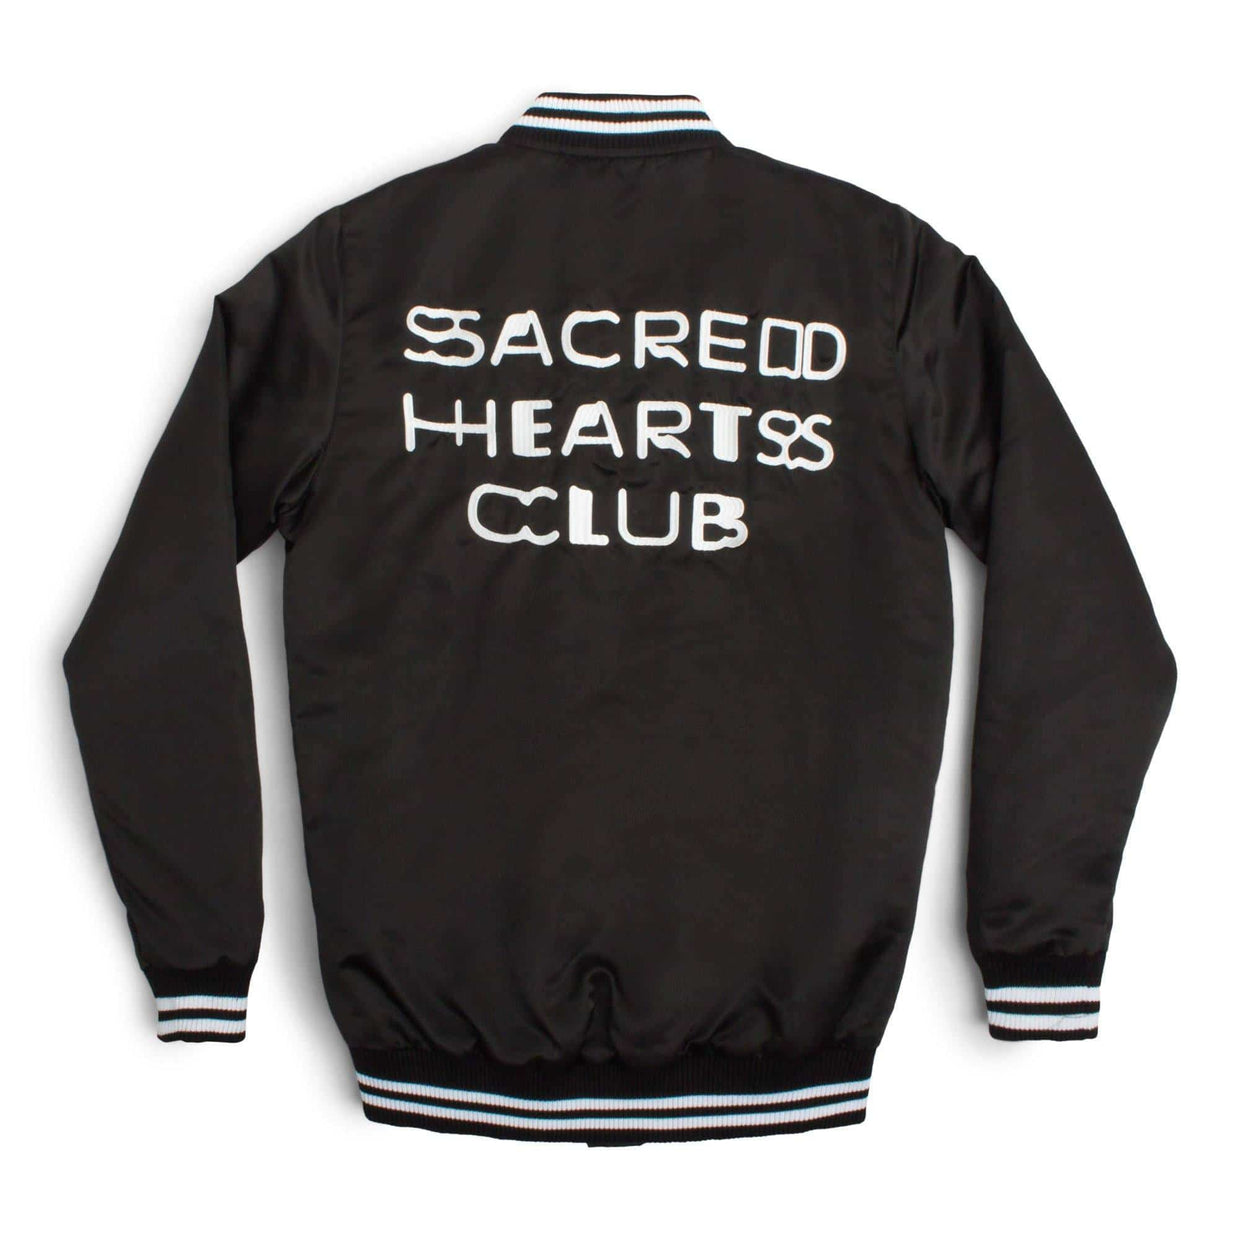 'Sacred Hearts Club' Letterman Jacket - Black